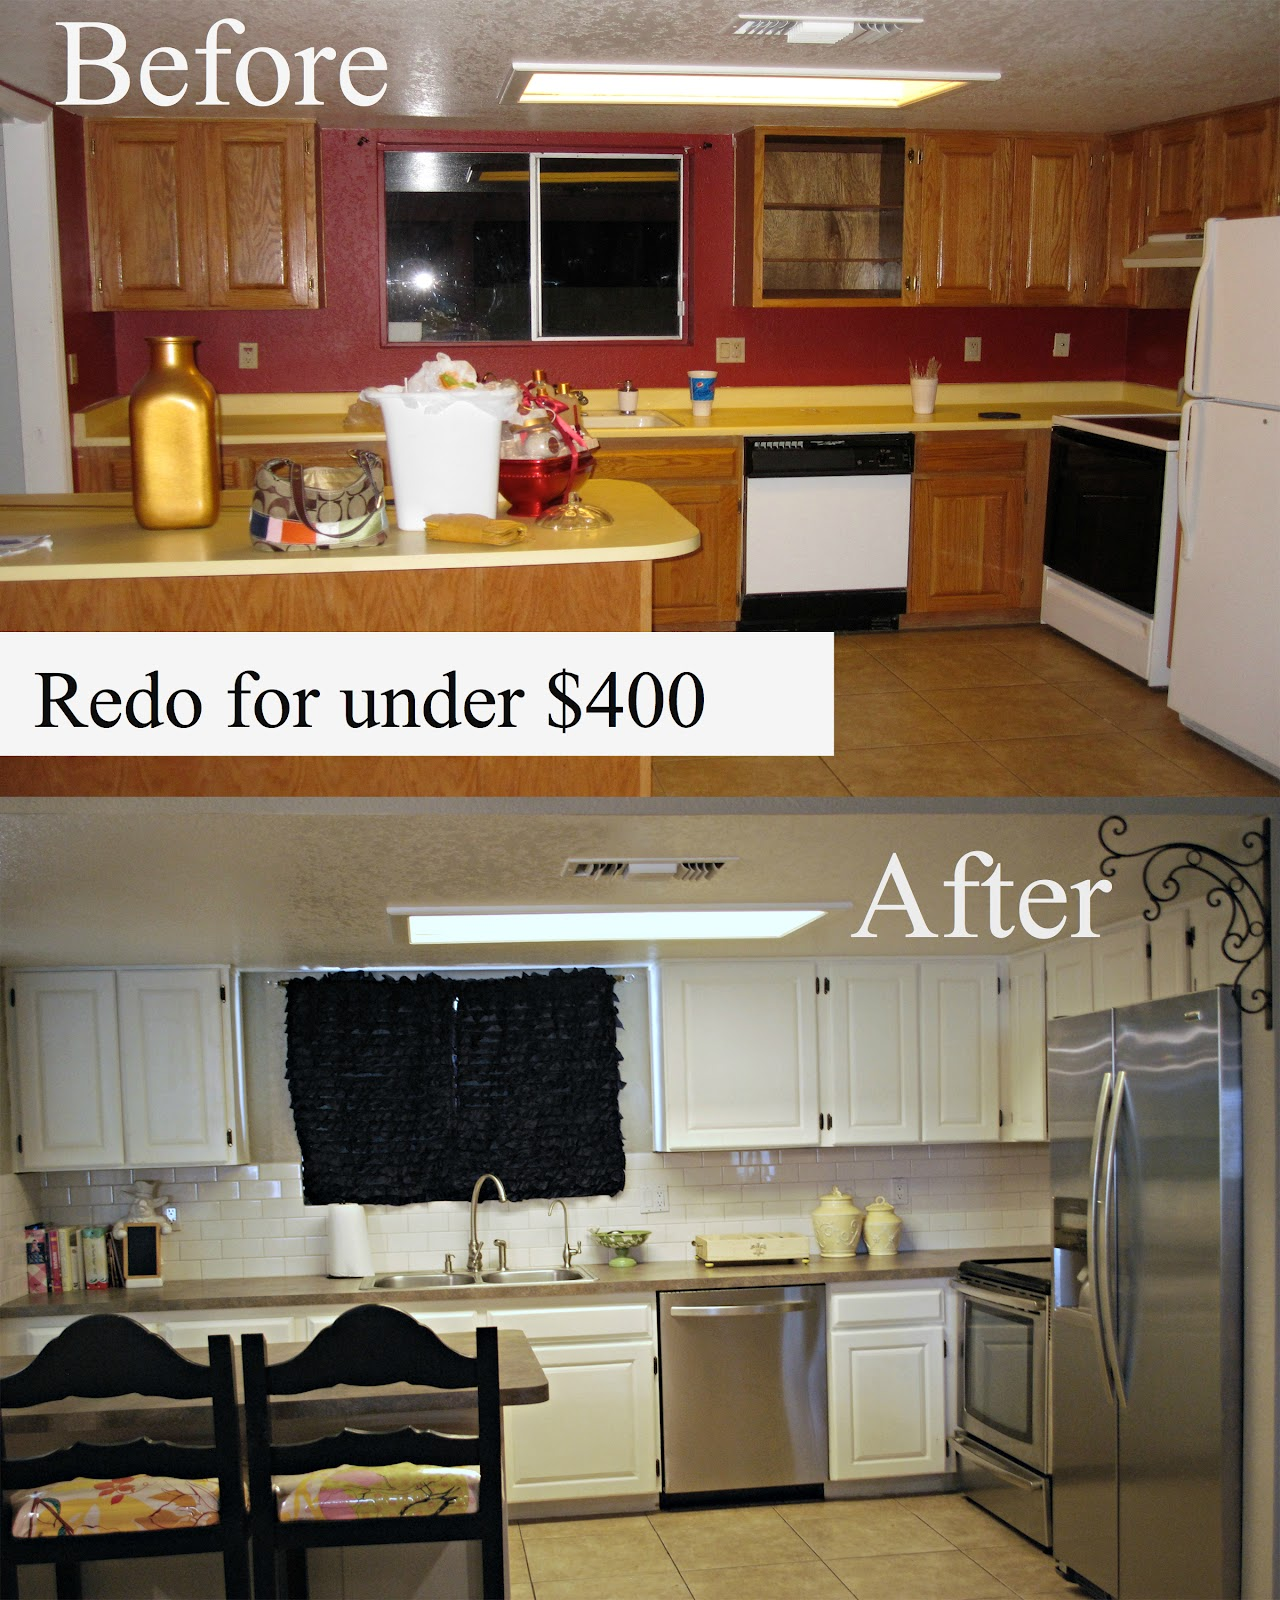 My Redo Of Our Manufactured Home In 2019: My Kitchen Redo Under $400!